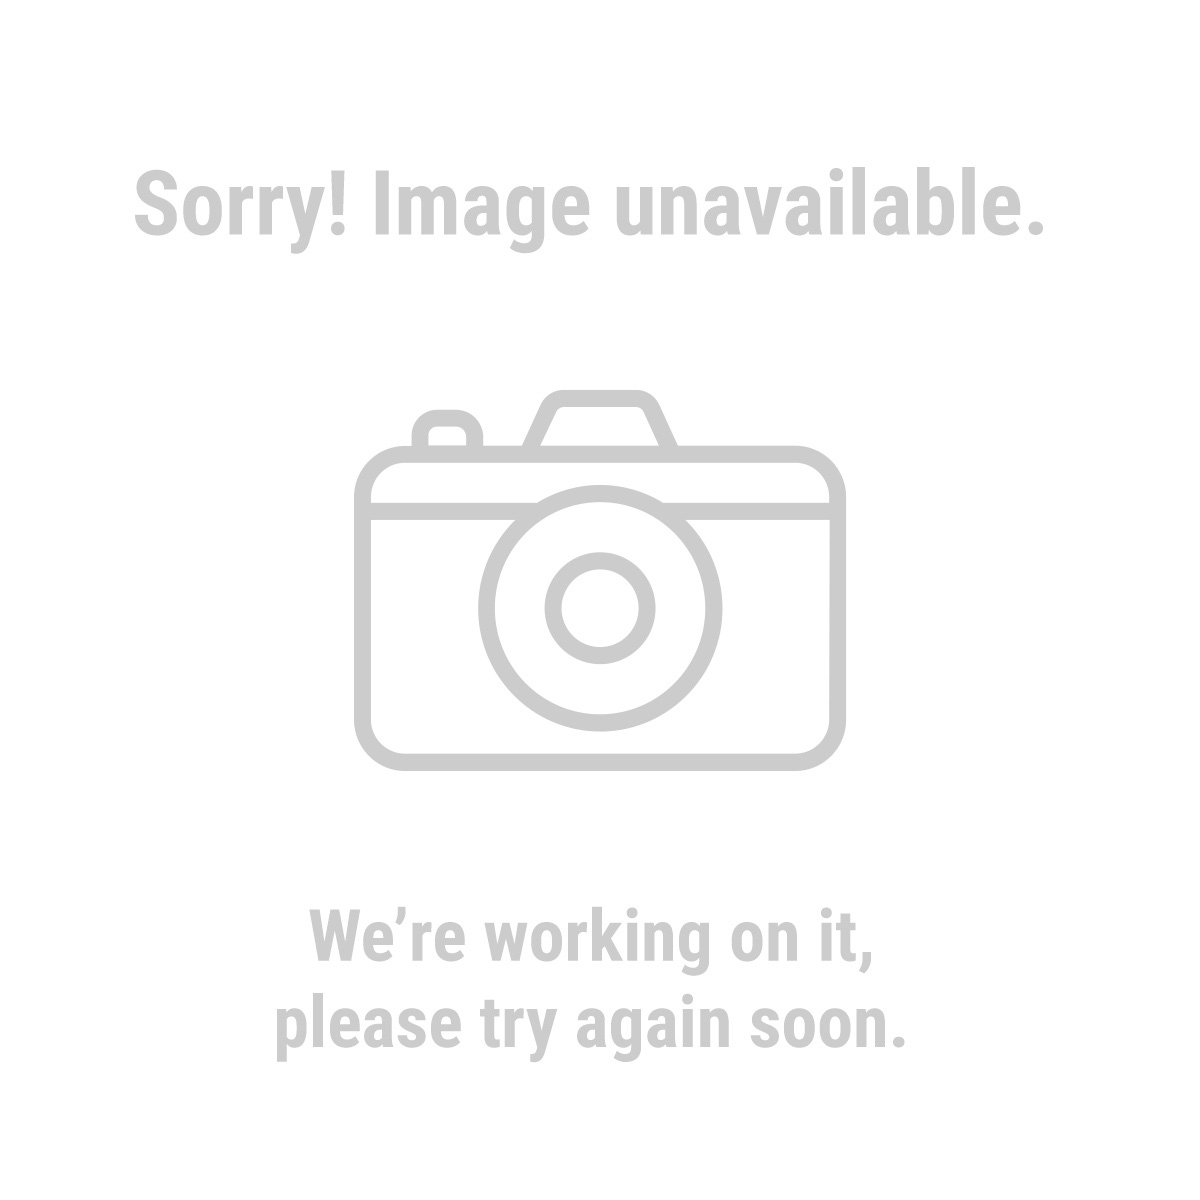 HFT 69184 9 ft. 4 in. x 19 ft. 6 in. All Purpose Weather Resistant Tarp